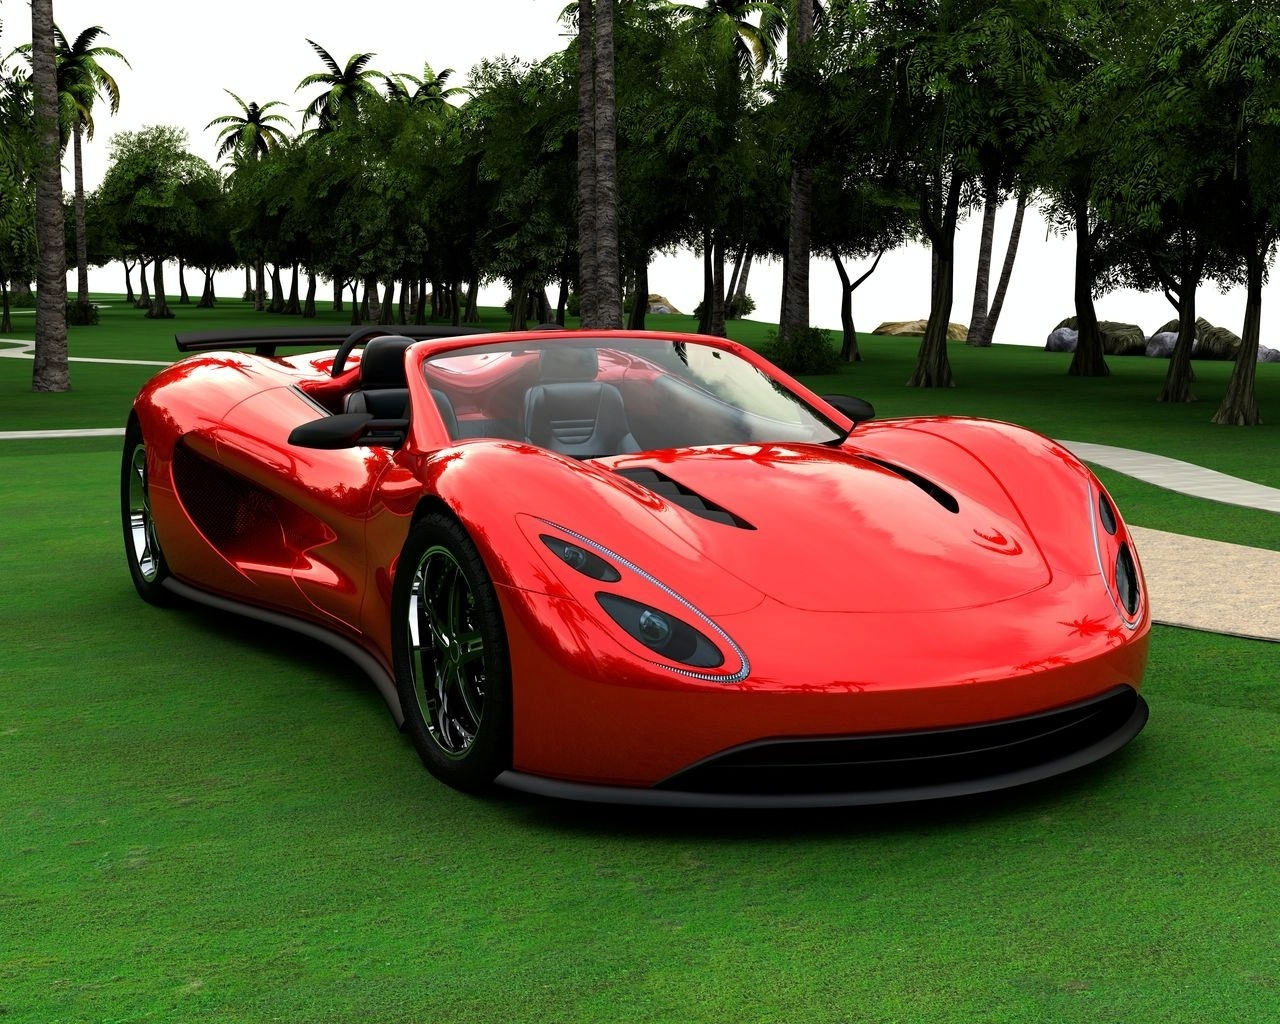 Car-Models-com: Hot Cars Wallpapers